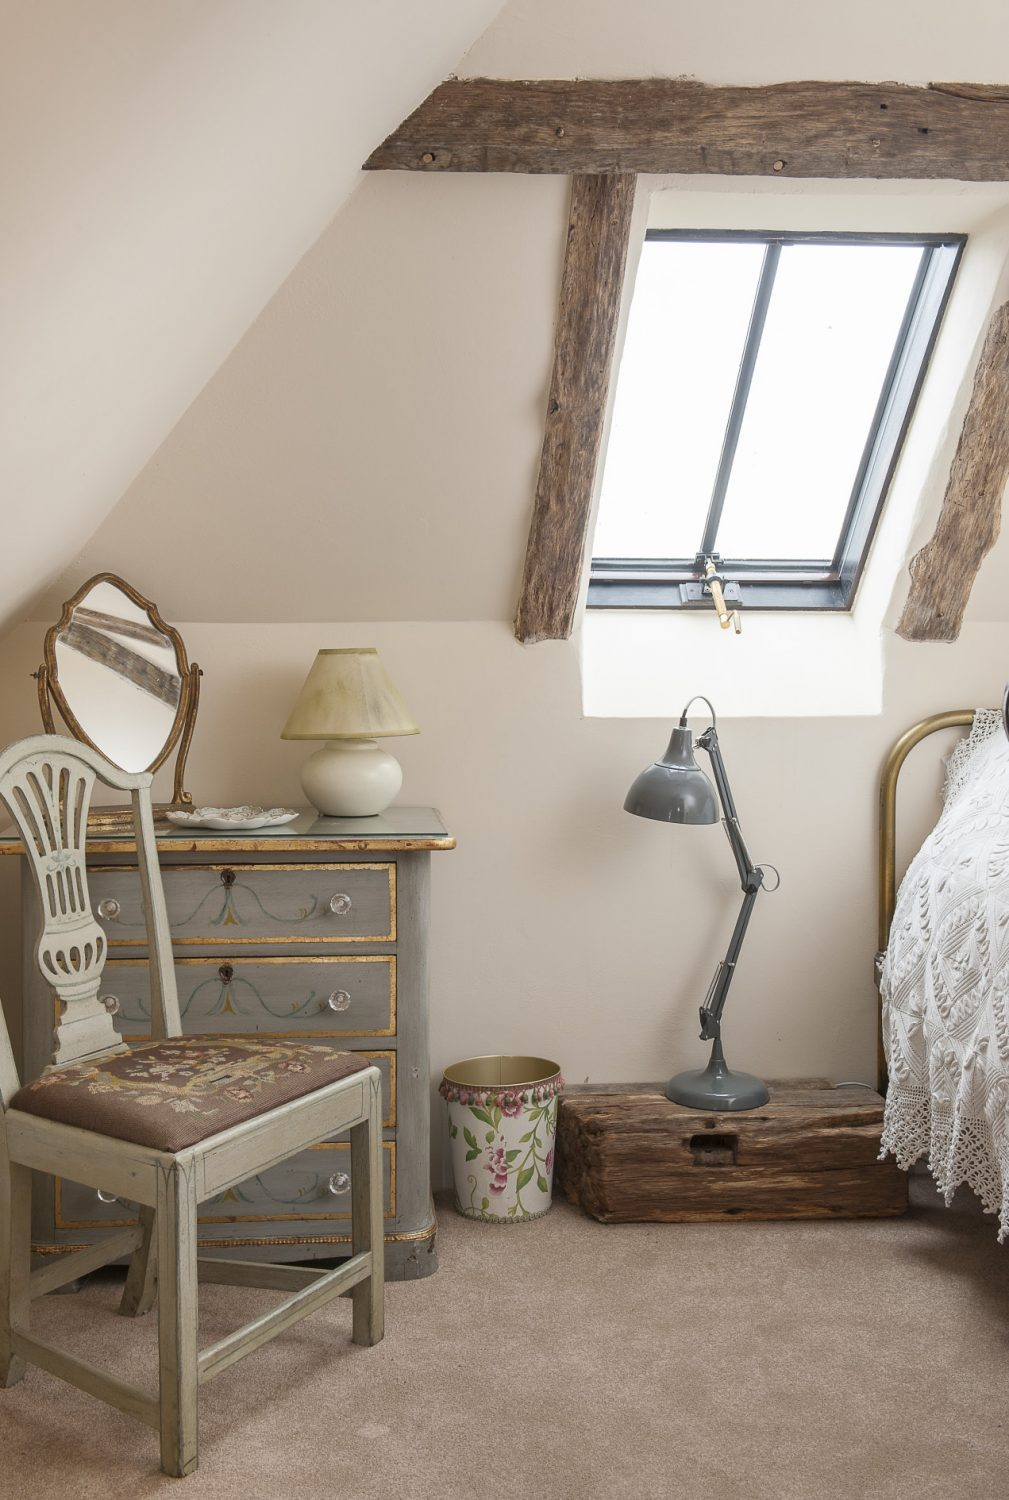 The upstairs bedrooms – a single and a twin – feature superb reclaimed oak timbers that give the impression of being high in the attic of a barn